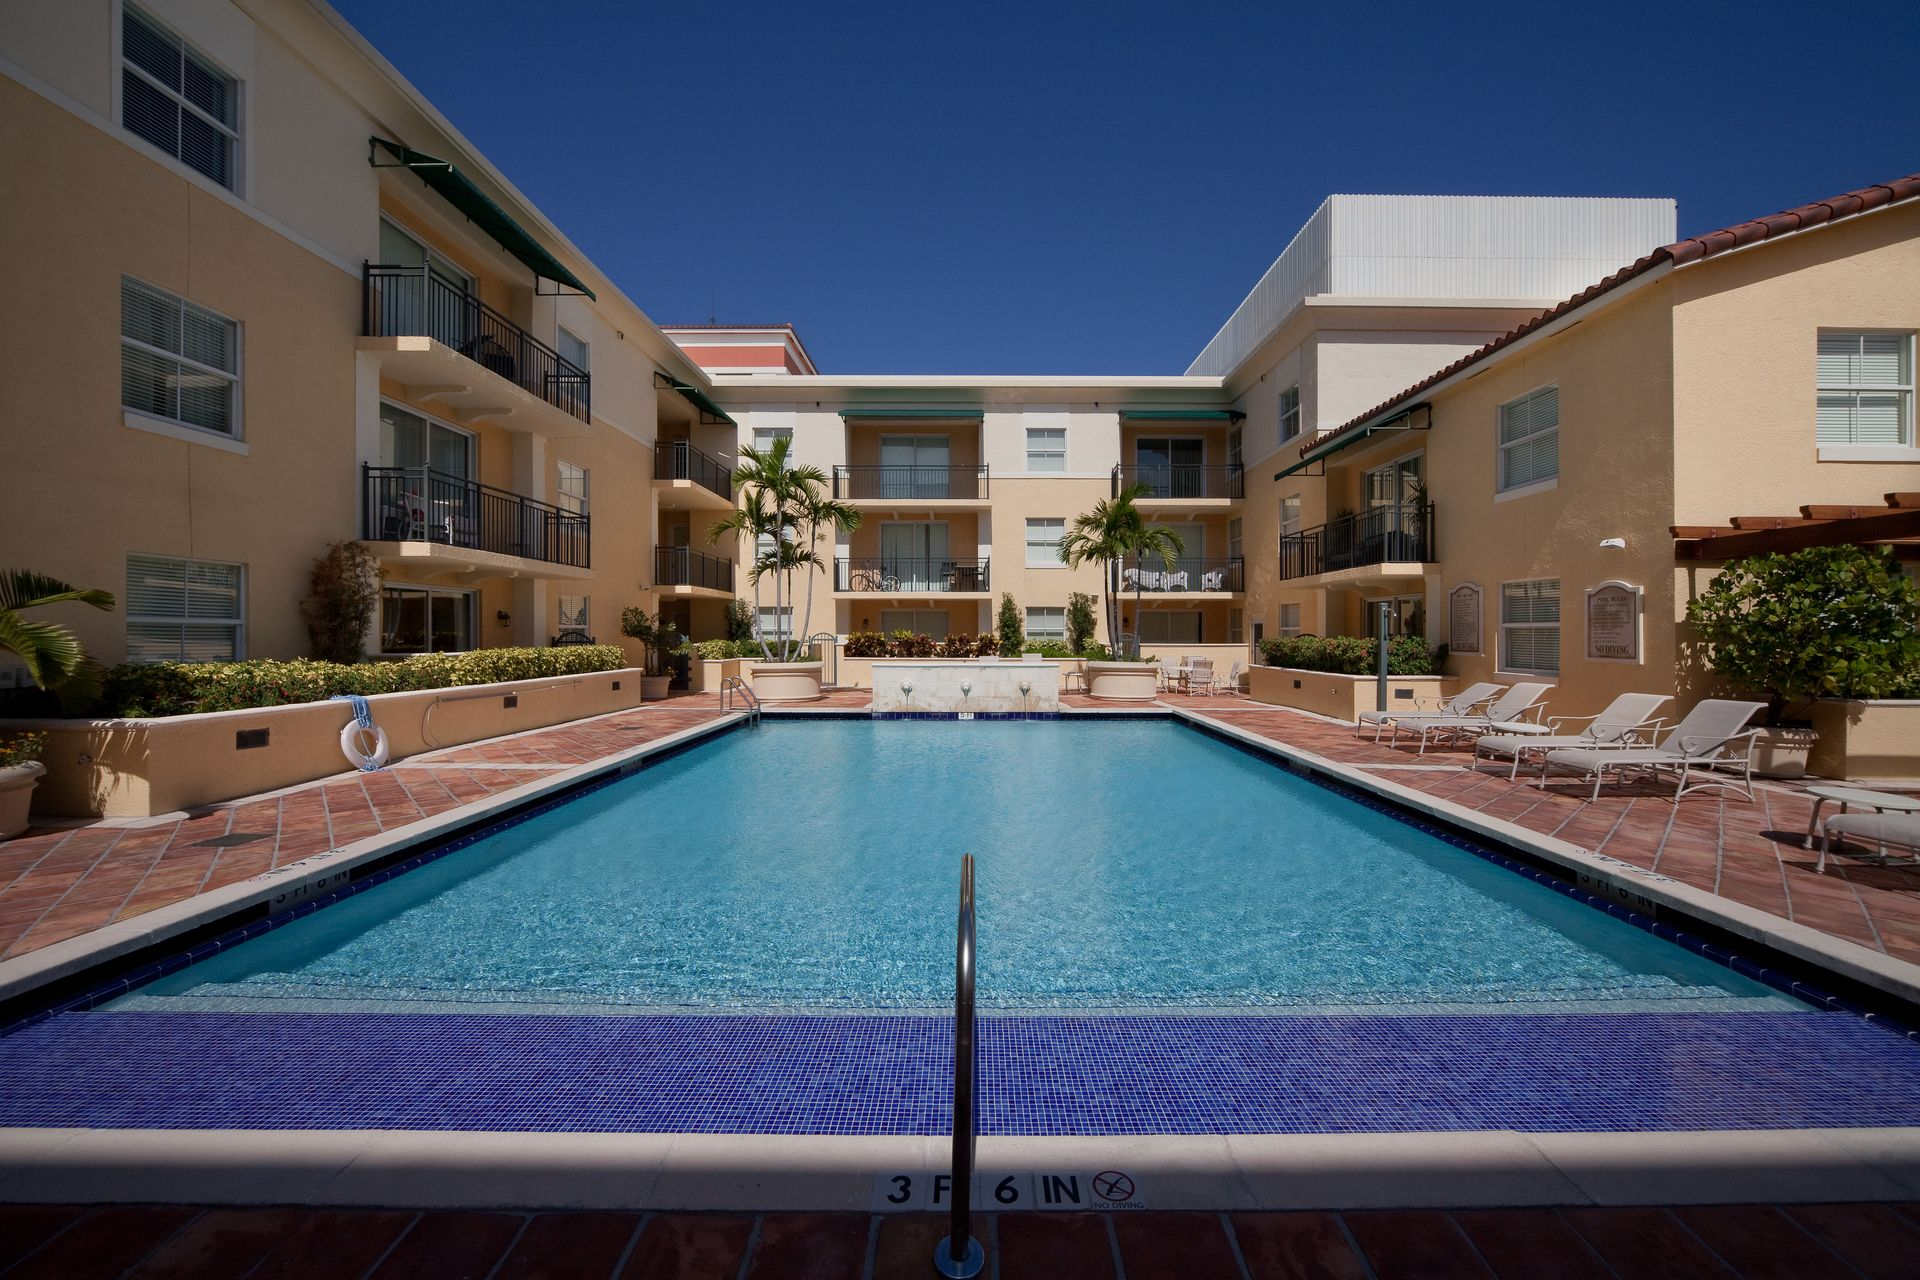 Pool area with apartments to the left and back